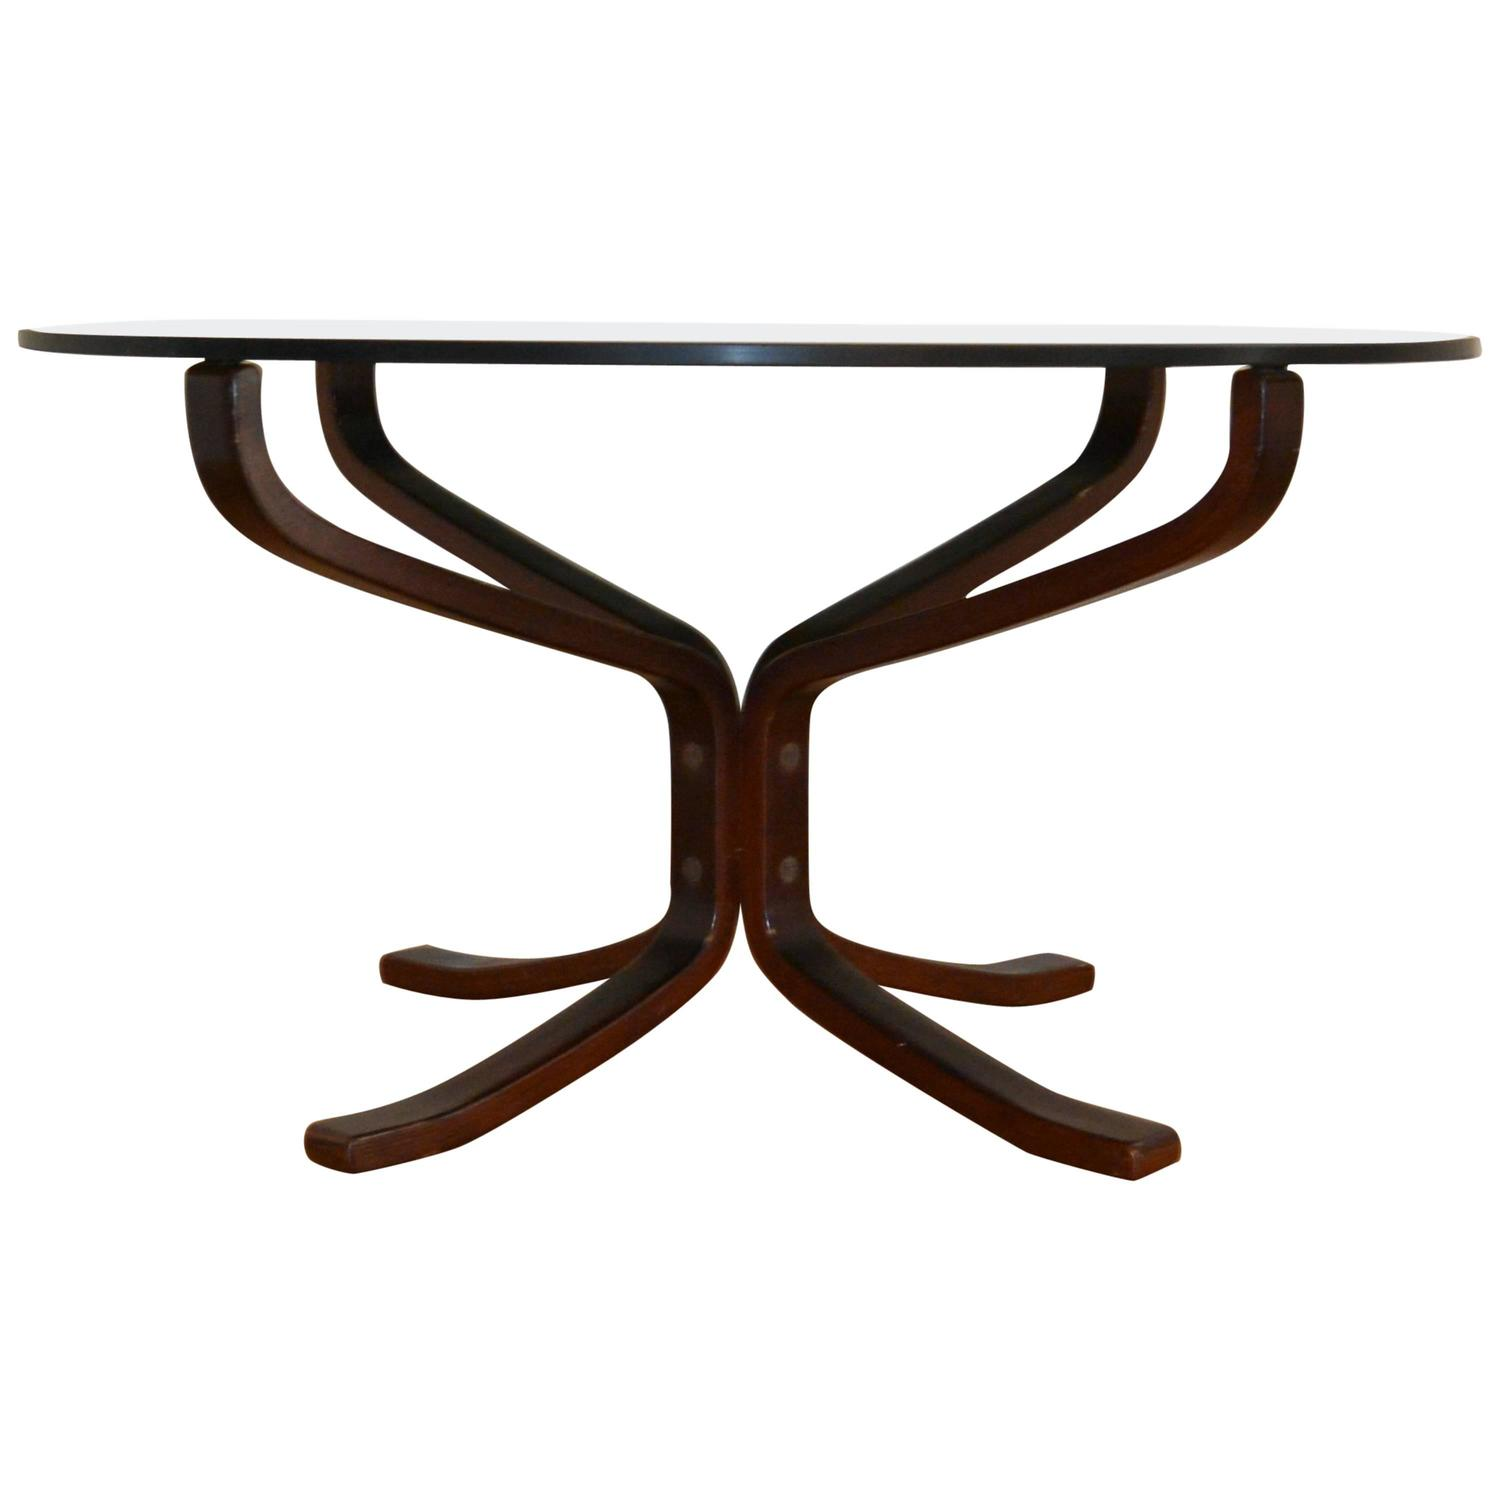 Norwegian Coffee and Cocktail Tables 53 For Sale at 1stdibs